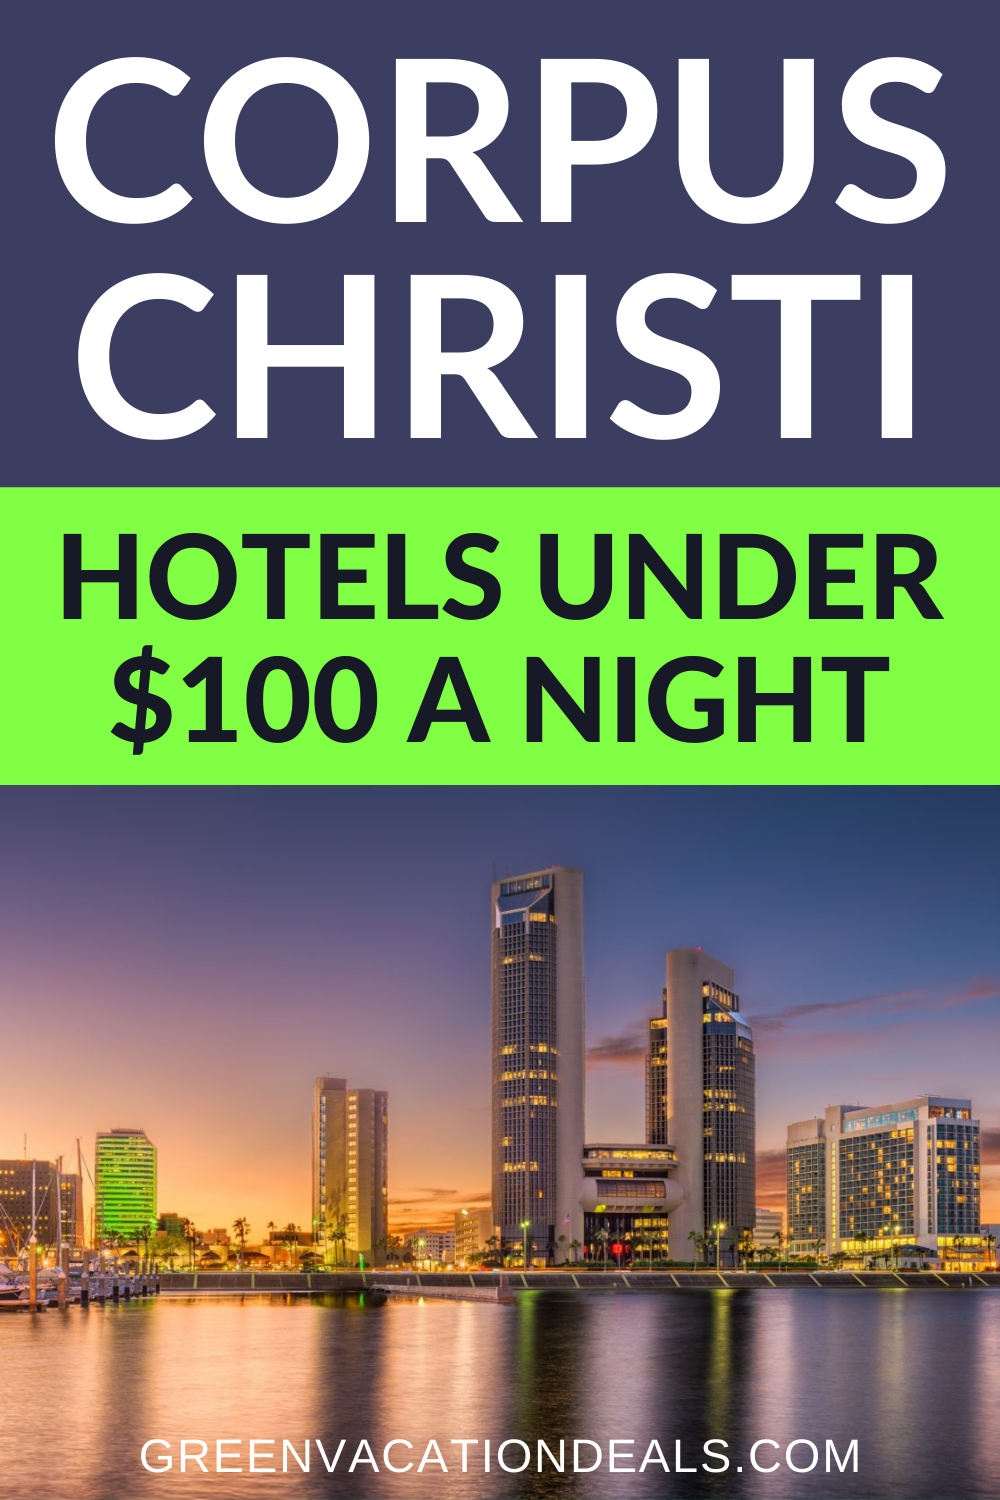 Corpus Christi, Texas hotel deals under $100/night: Hyatt, Pelican Bay Resort, Best Western, HIlton, Marriott, Wyndham, Tru South Padre Island, Aloft, etc. Texas travel hacks if you're looking for where to stay on your next trip. #CorpusChristi #Texas #HotelDeals #TravelDeals #TravelSale #HotelSale #TravelHacks #CheapTravel #BudgetTravel #BudgetTraveler #BudgetVacation #CheapVacation #Texastravel #surfing